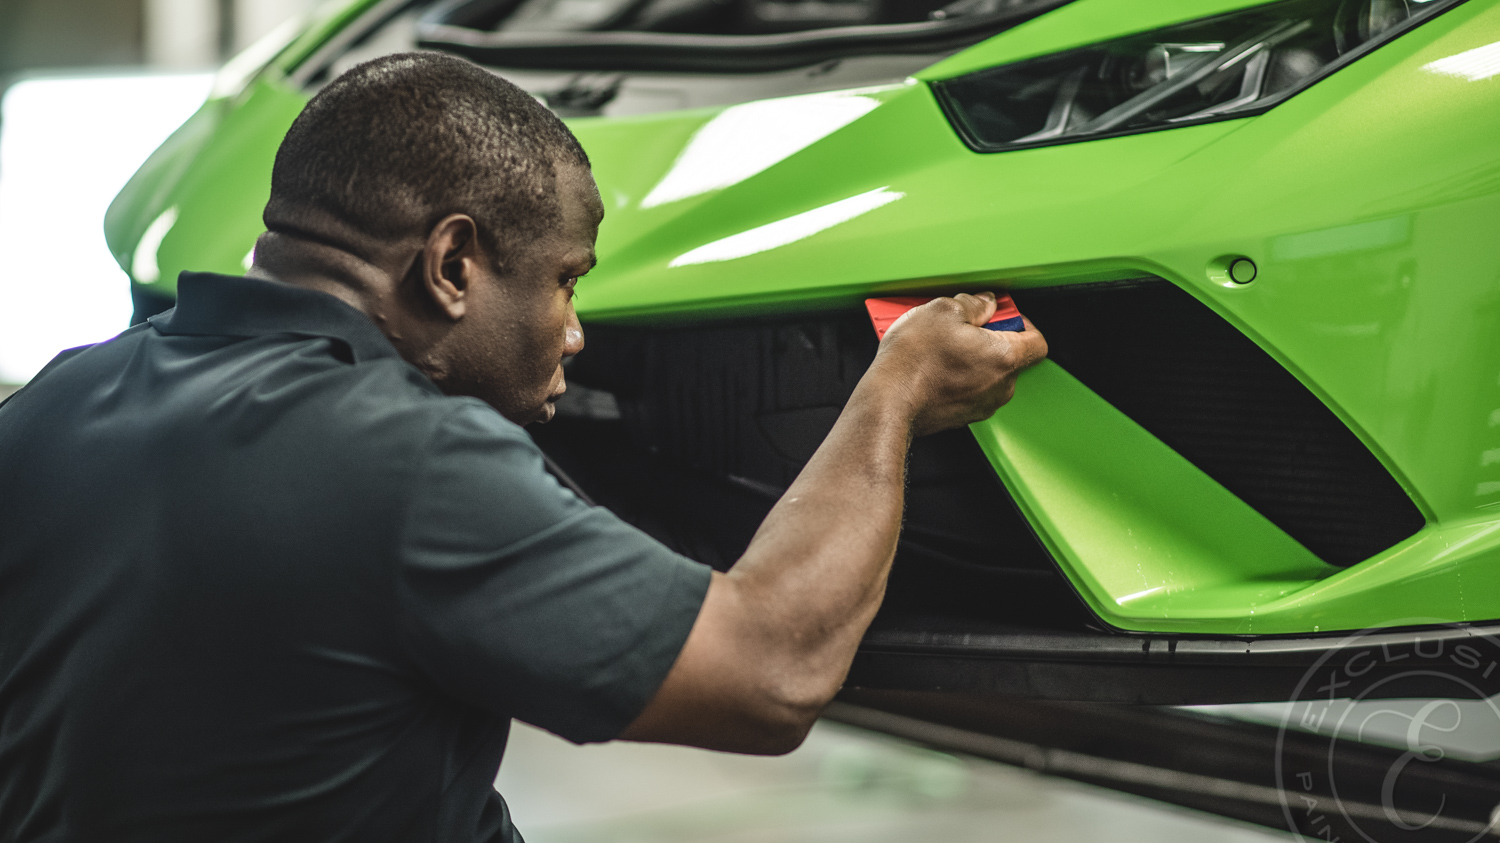 - Exclusive Paint Protection was the first XPEL authorized installer in Charlotte, NC and the surrounding region.Learn more about Paint Protection Film.